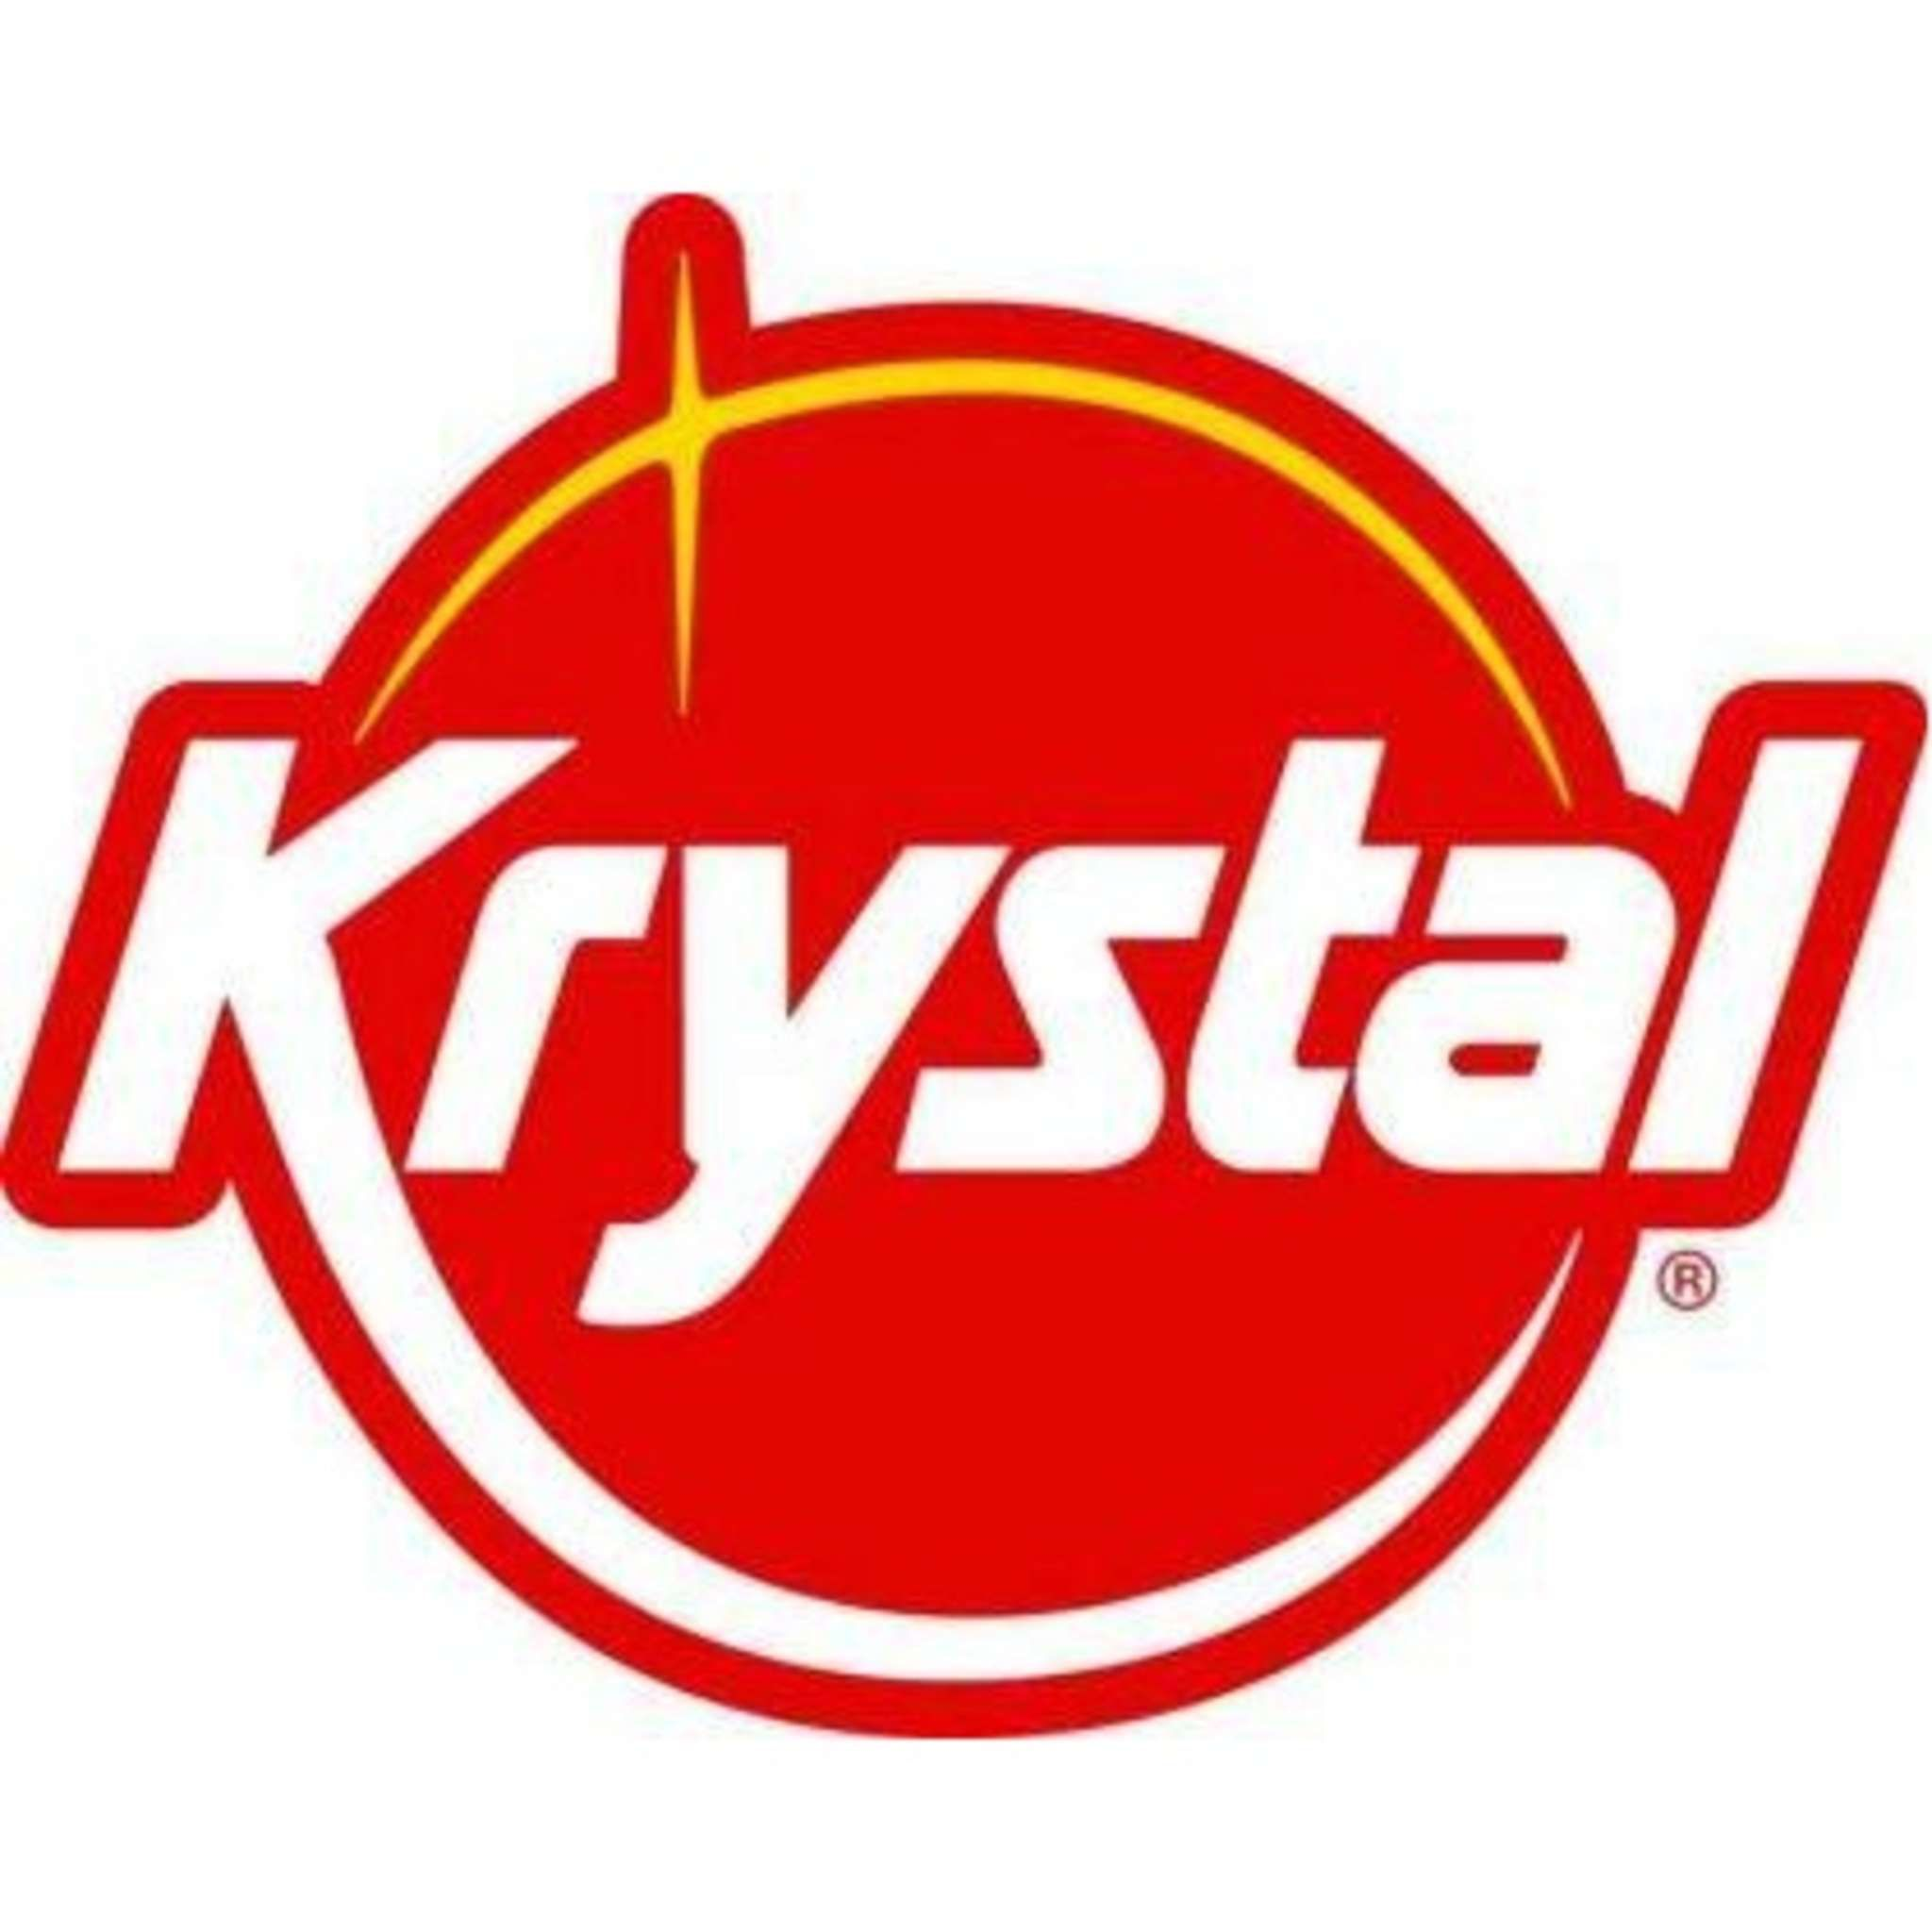 Krystal Celebrates National Hot Dog Month With 0 99 Pups All Summer Long Review Giveaway Krystal Restaurant Krystal Burger Holiday Stuffing Recipes